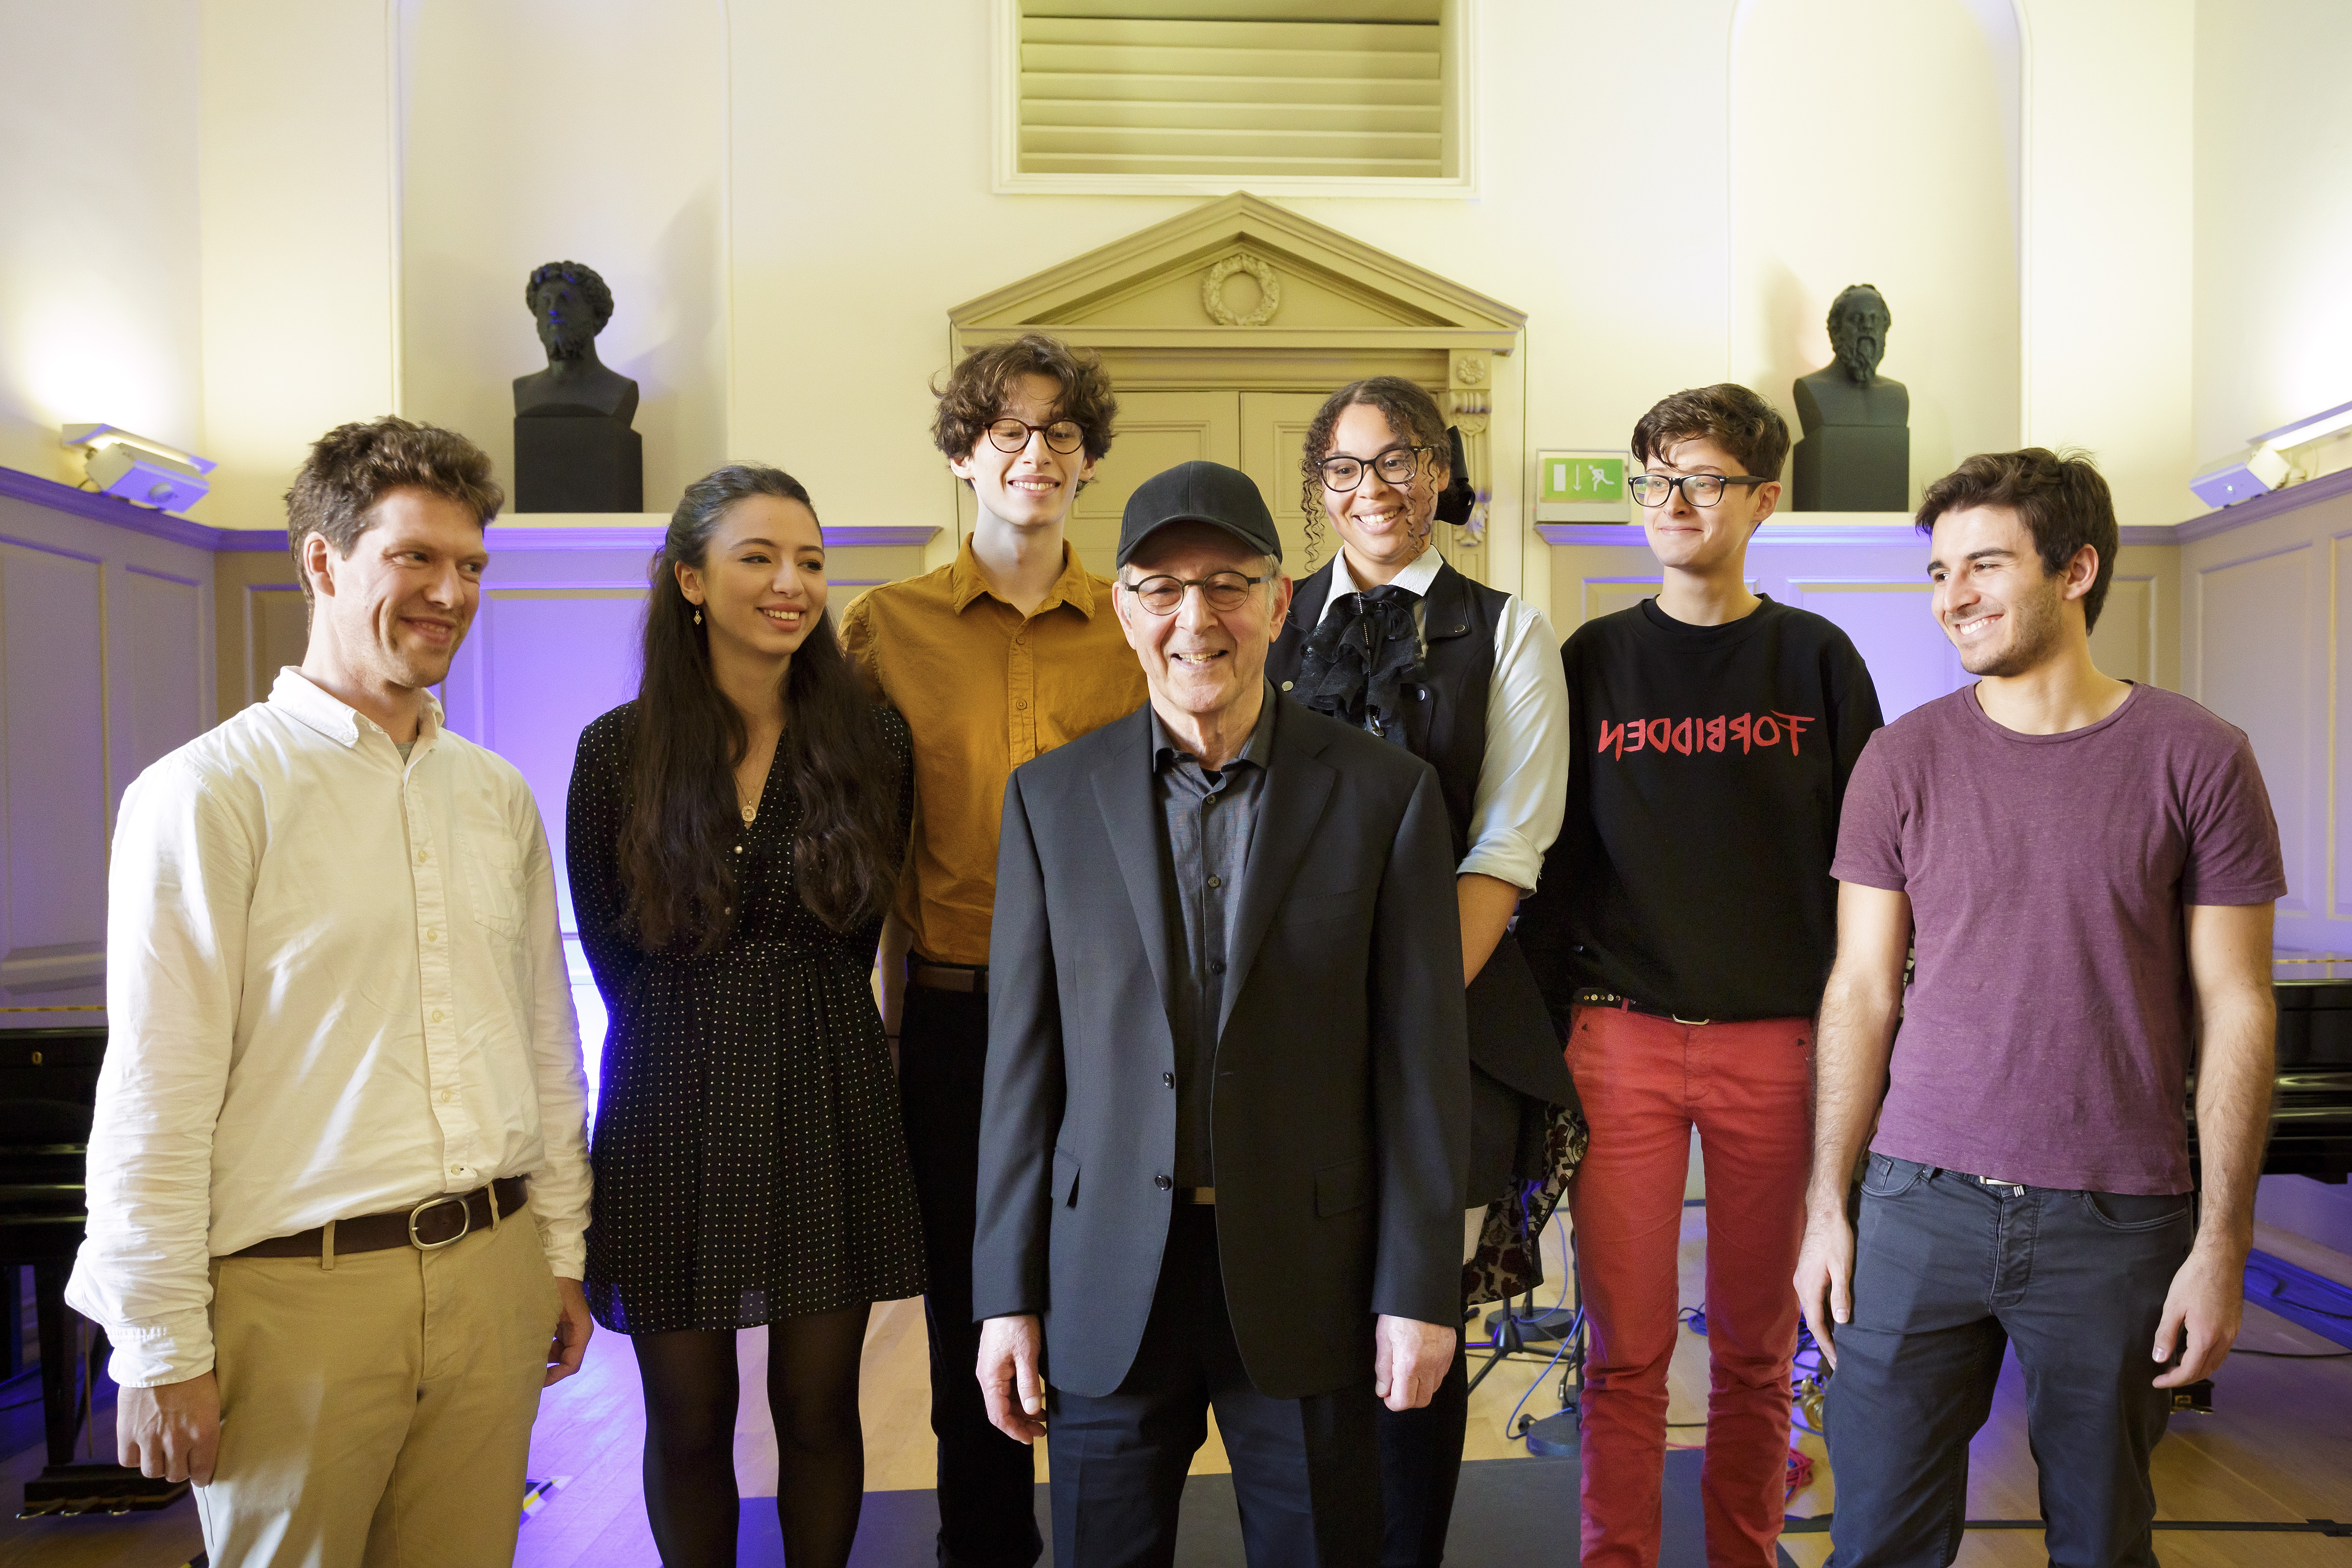 Steve_Reich_Honorary_Fellowship_Oct_19_tk_221019_177_final (1).jpg